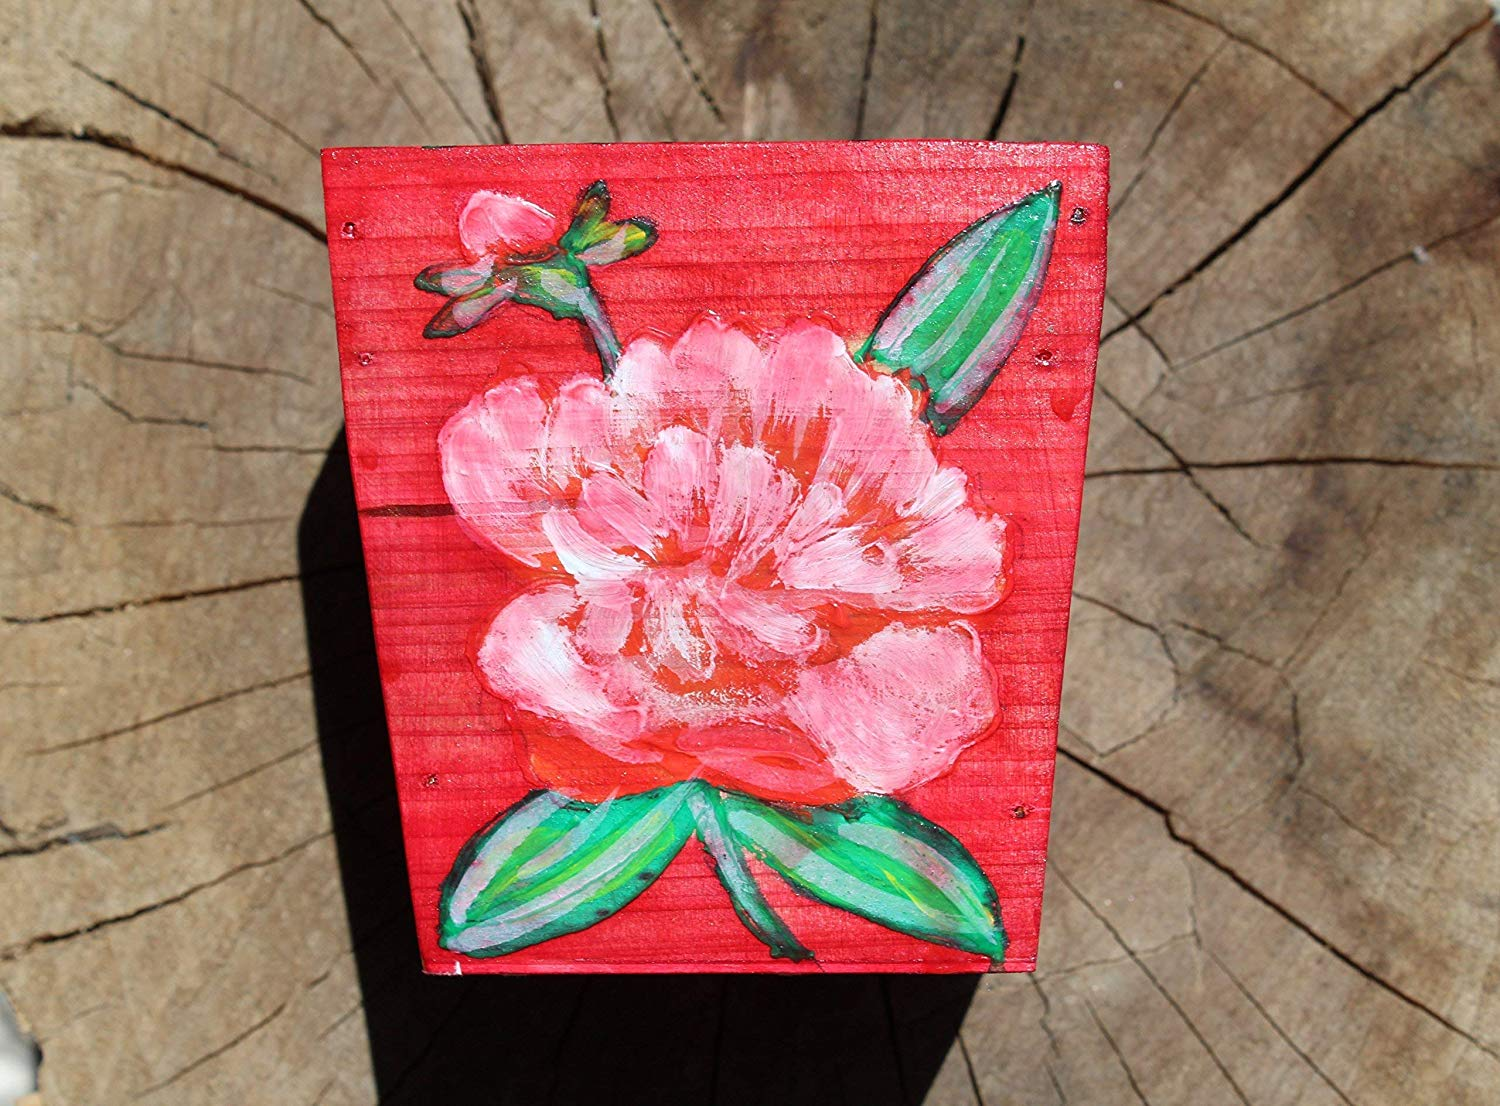 SALE!!!20% OFF,WOOD,Hand Painted Pot with Acrylic Red Rose,Wooden Hanging,Pots made of Wood,Red Rose Wooden Planter,Red Rose in Pot,Miniature Wall Art